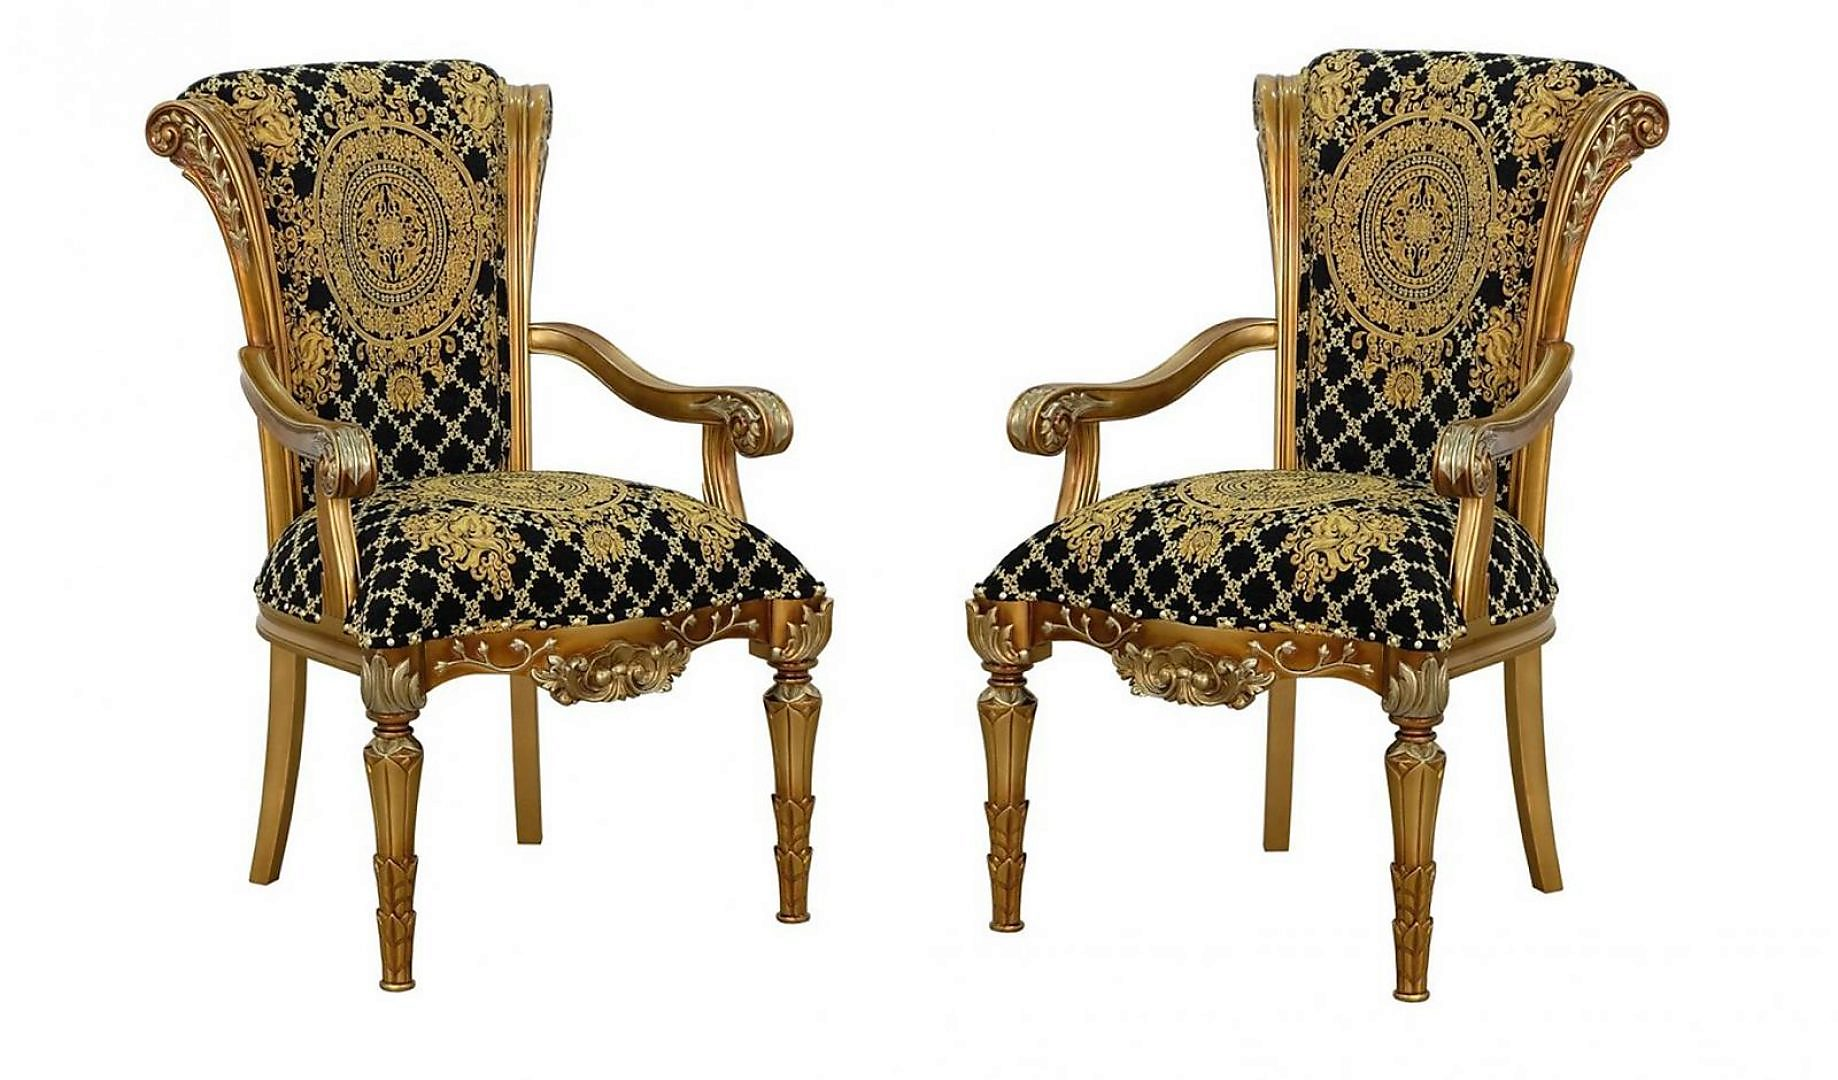 Classic, Traditional Black, Bronze, Gold, Ebony Fabric and Wood, Solid Hardwood Dining Arm Chair Set 2 pcs VALENTINA by European Furniture